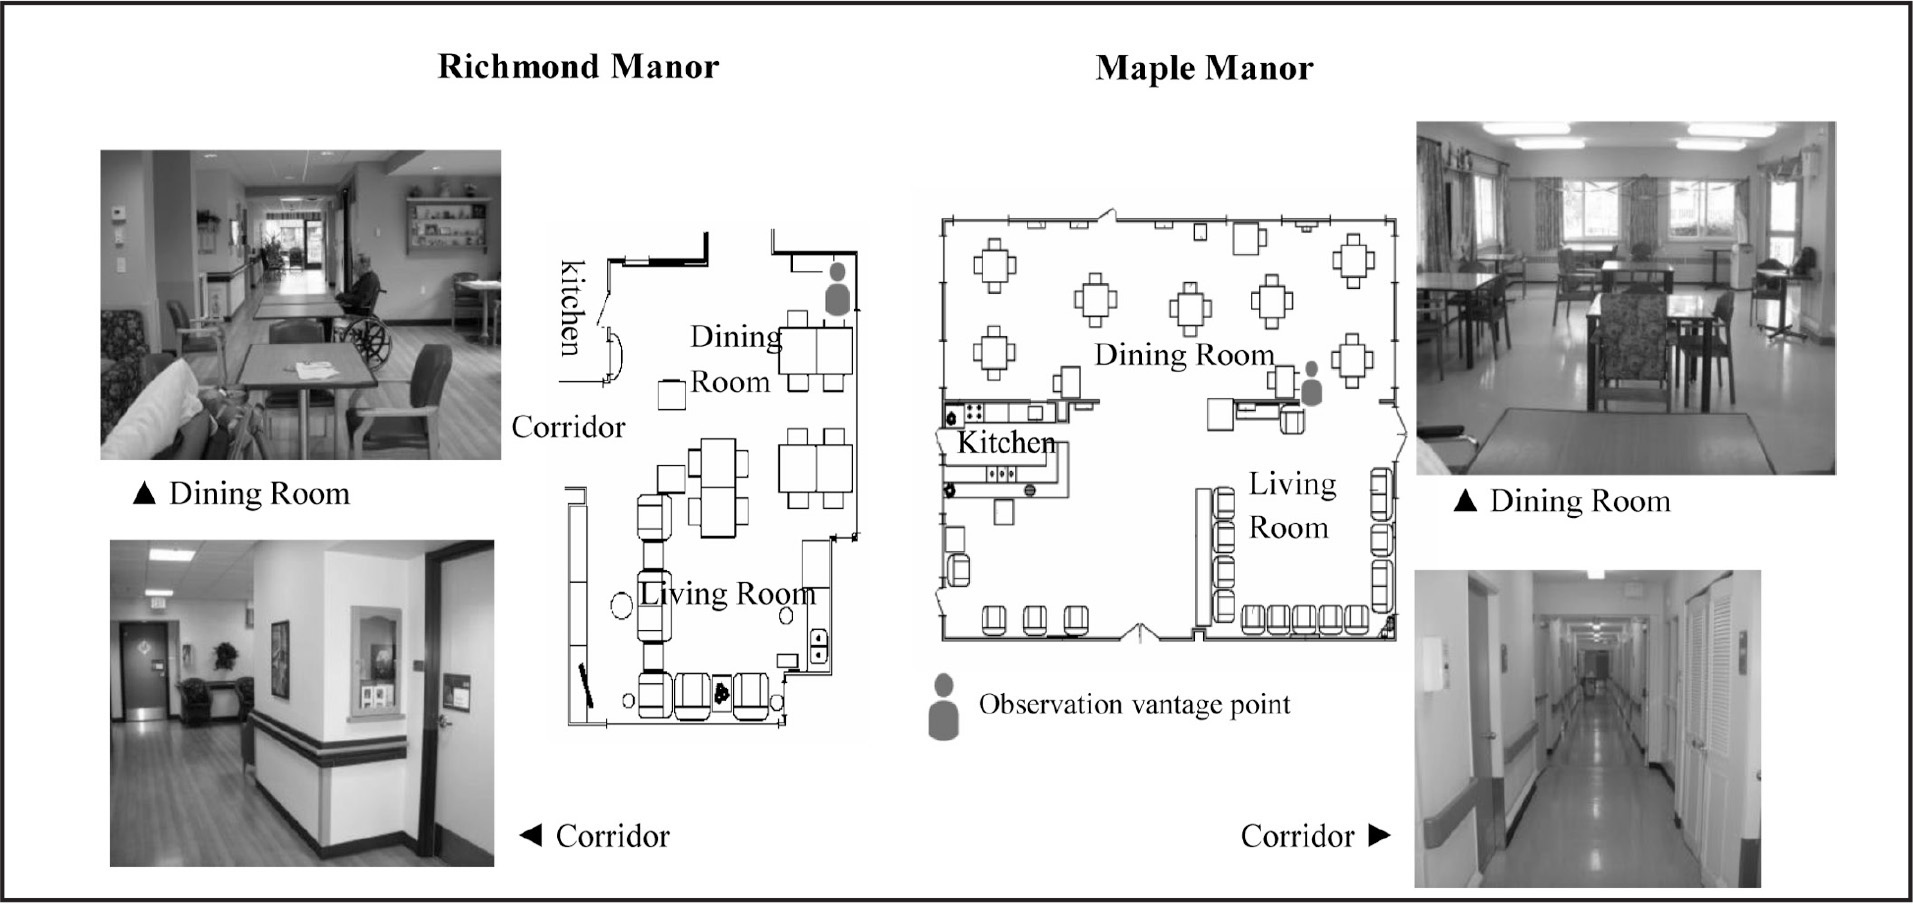 Primary communal spaces in Richmond Manor and Maple Manor.